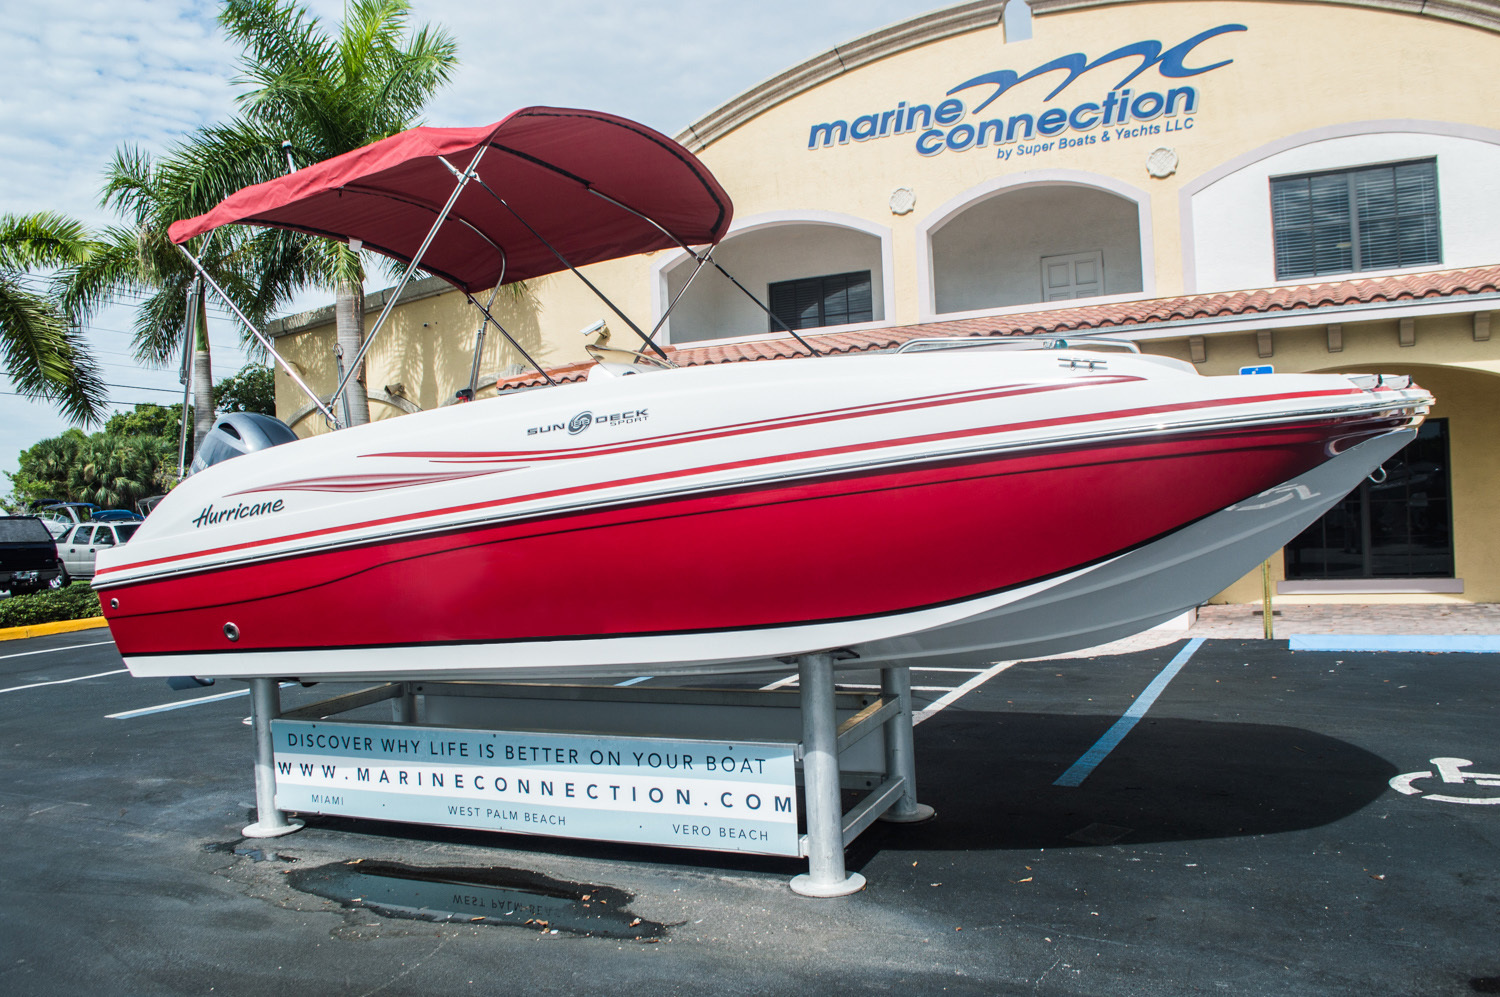 New 2014 hurricane sundeck sport ss 188 ob boat for sale for Hurricane sundeck for sale